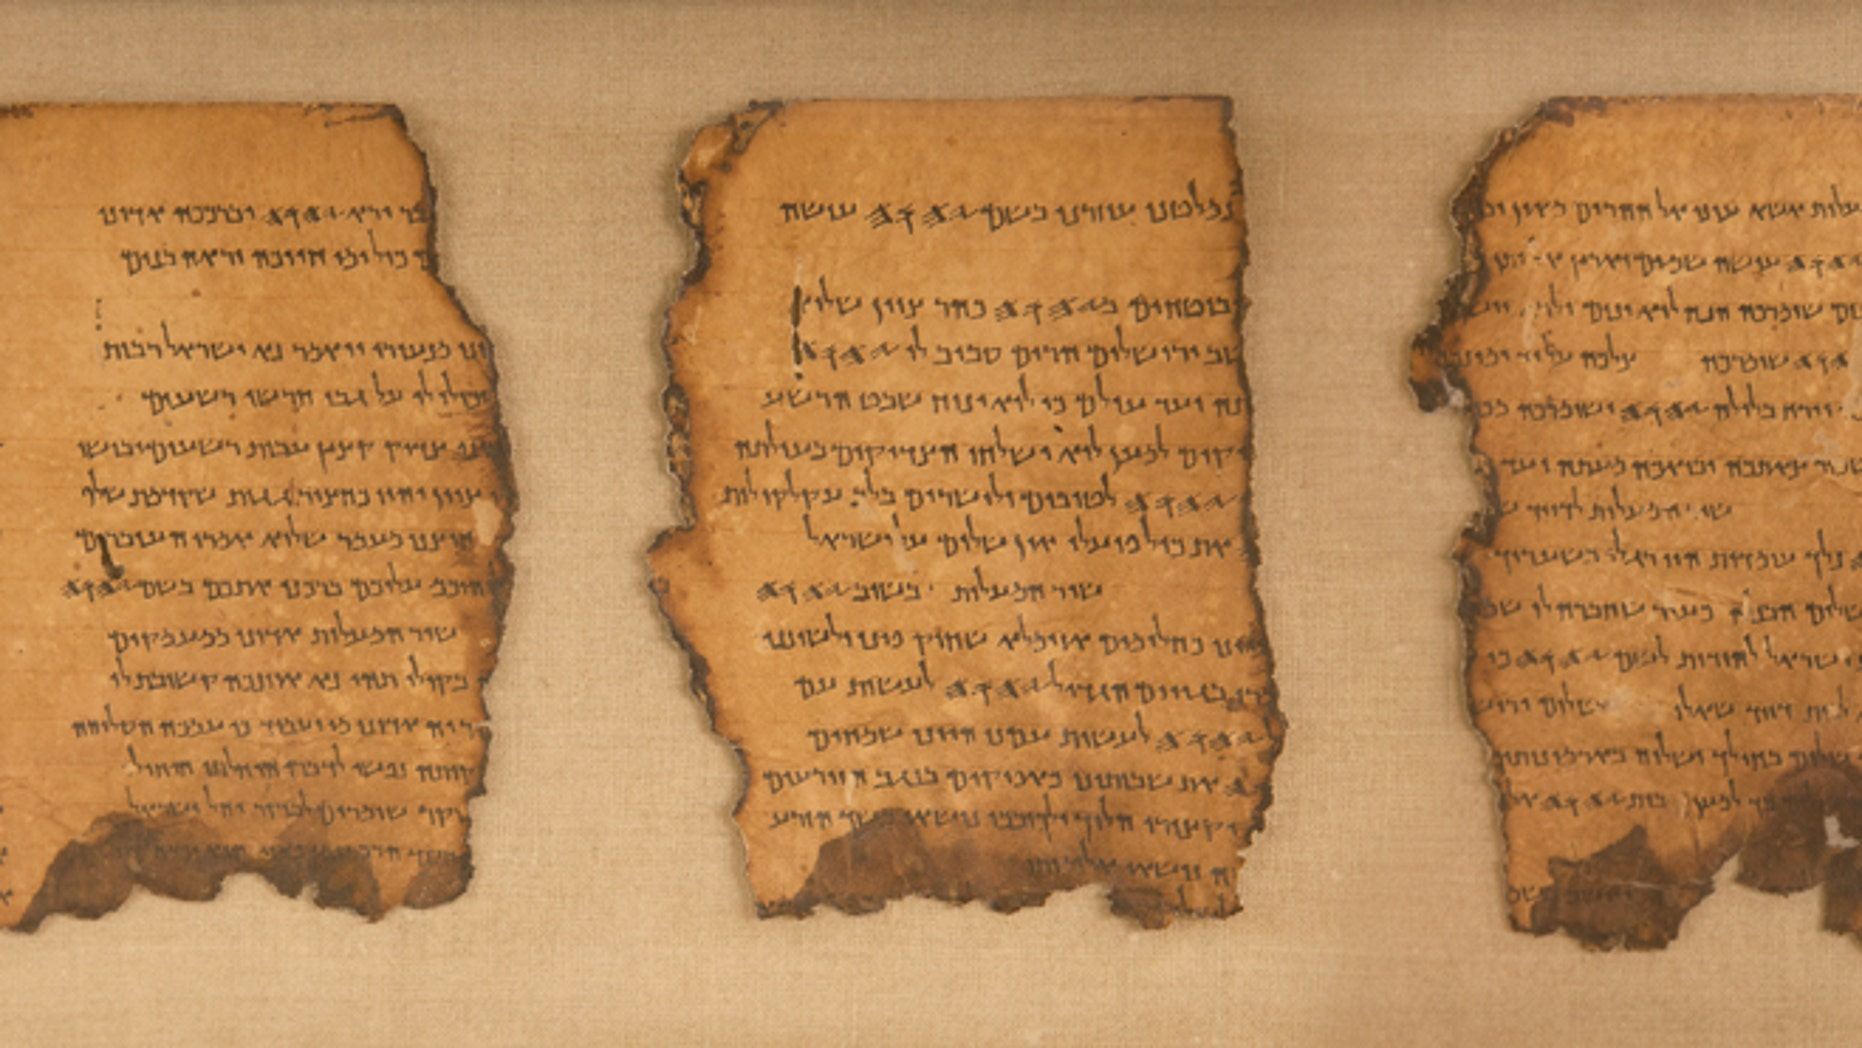 """The ancient Dead Sea Scrolls are on display at the """"Life and Faith In Biblical Times"""" exhibit at  Discovery Times Square in New York City."""